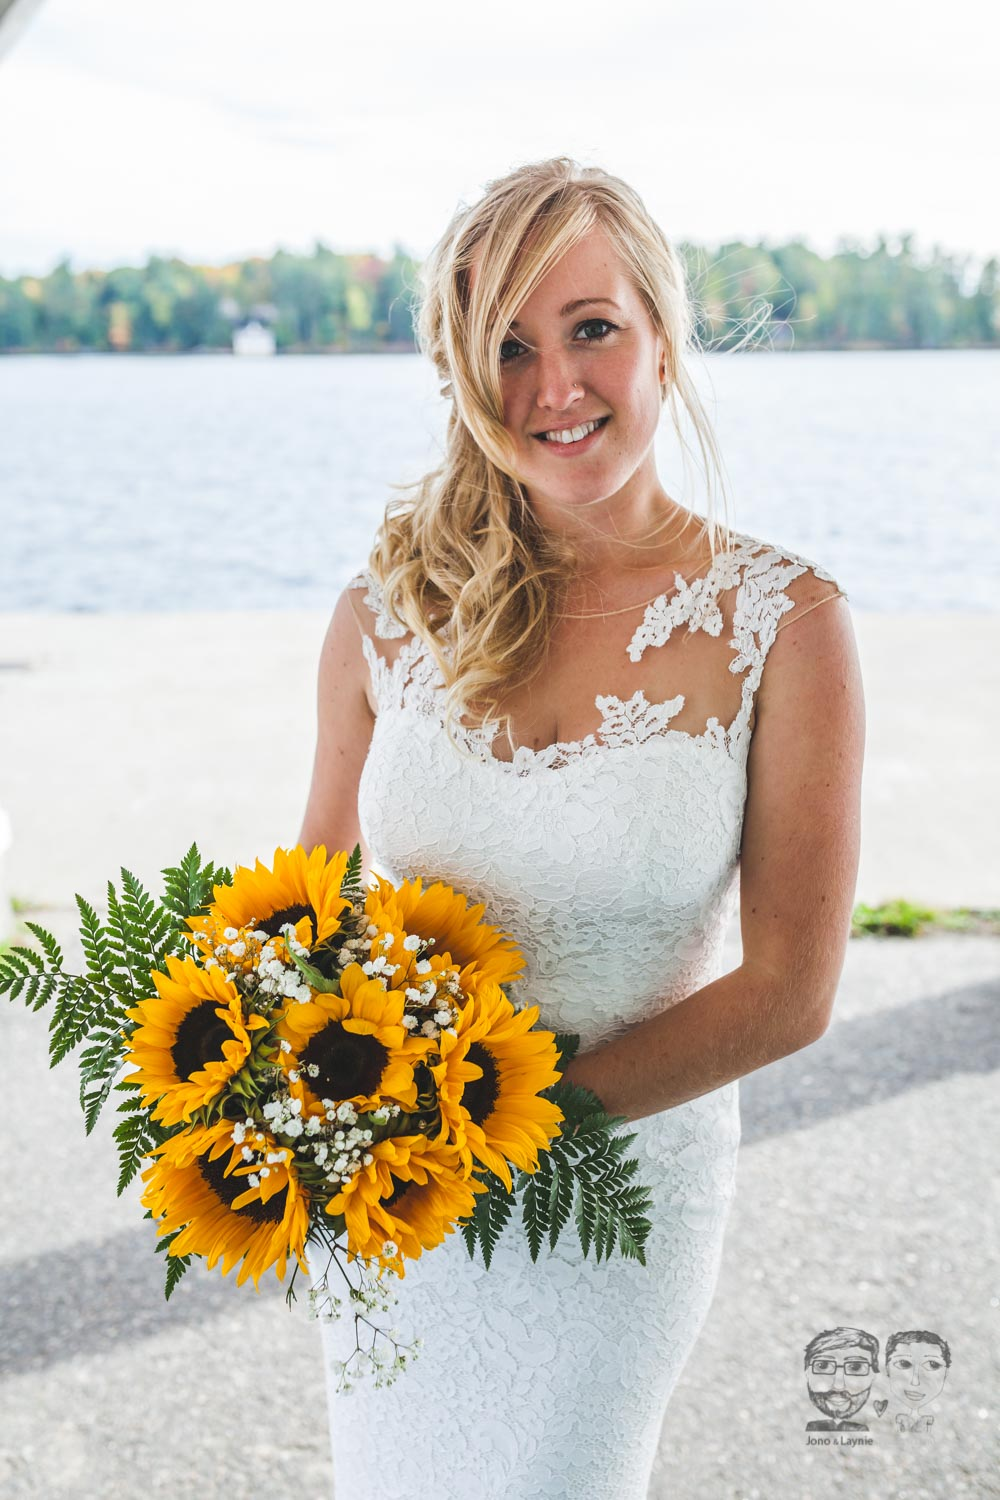 Muskoka Wedding Photographer-Jono & Laynie Co.062.jpg